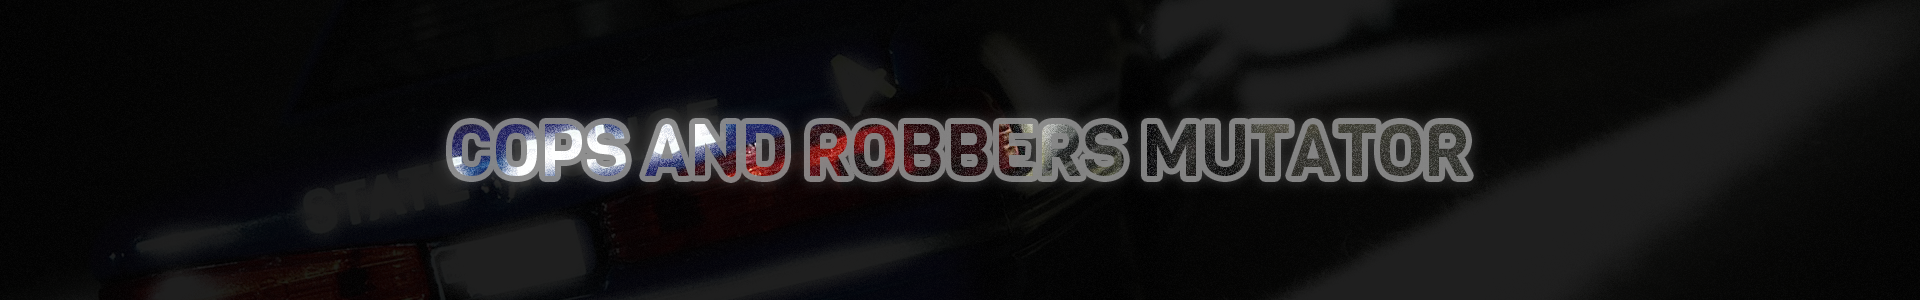 cops and robbers banner